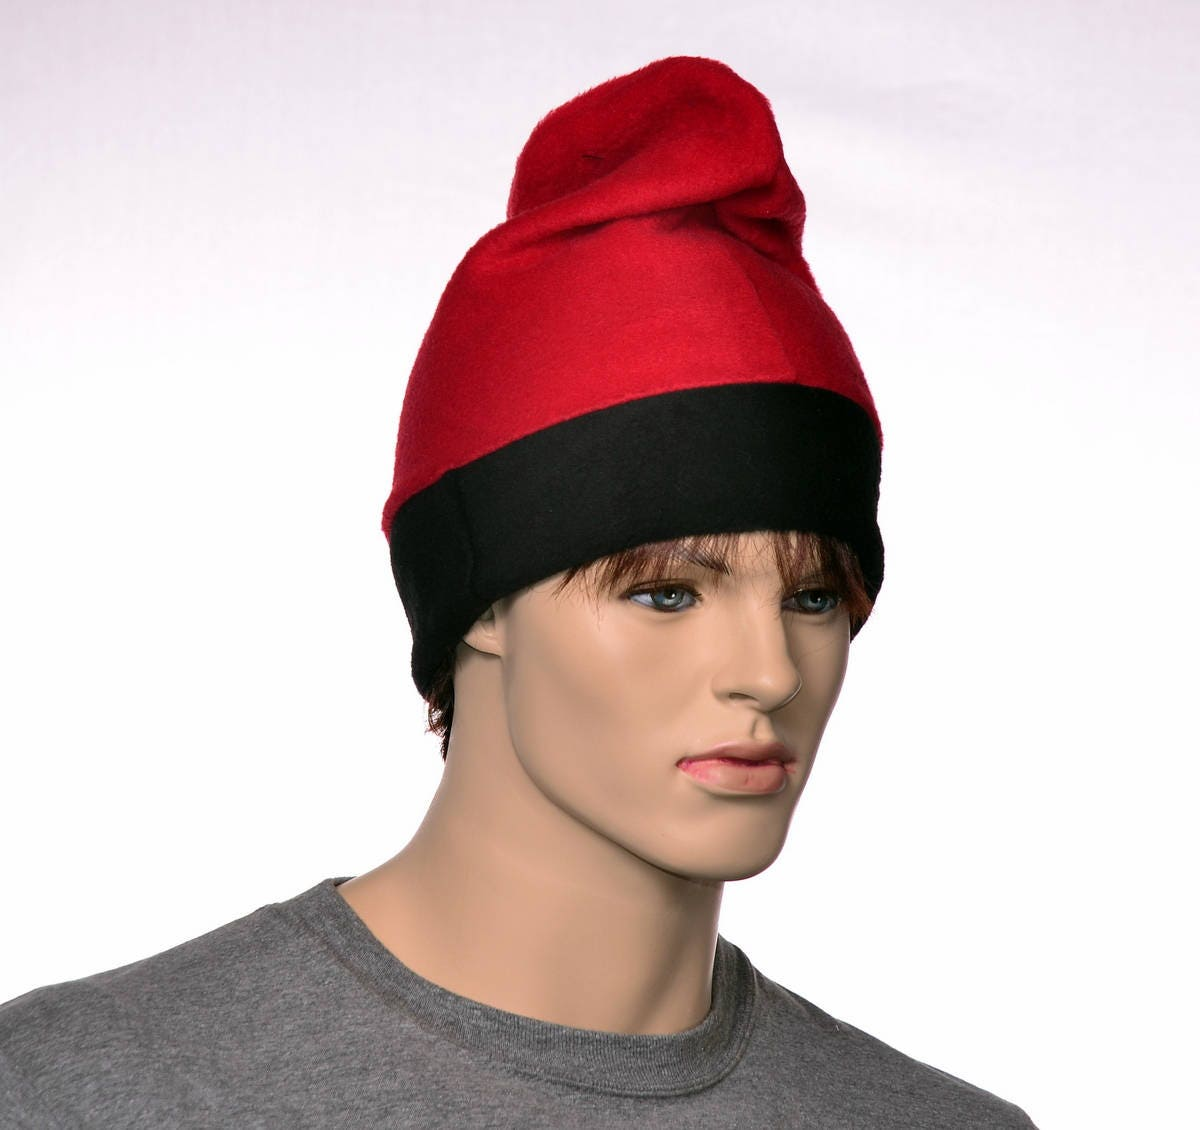 e190b8a22 Barretina Hat Red Black Fleece Slouchy Beanie Cap Barrentina ...